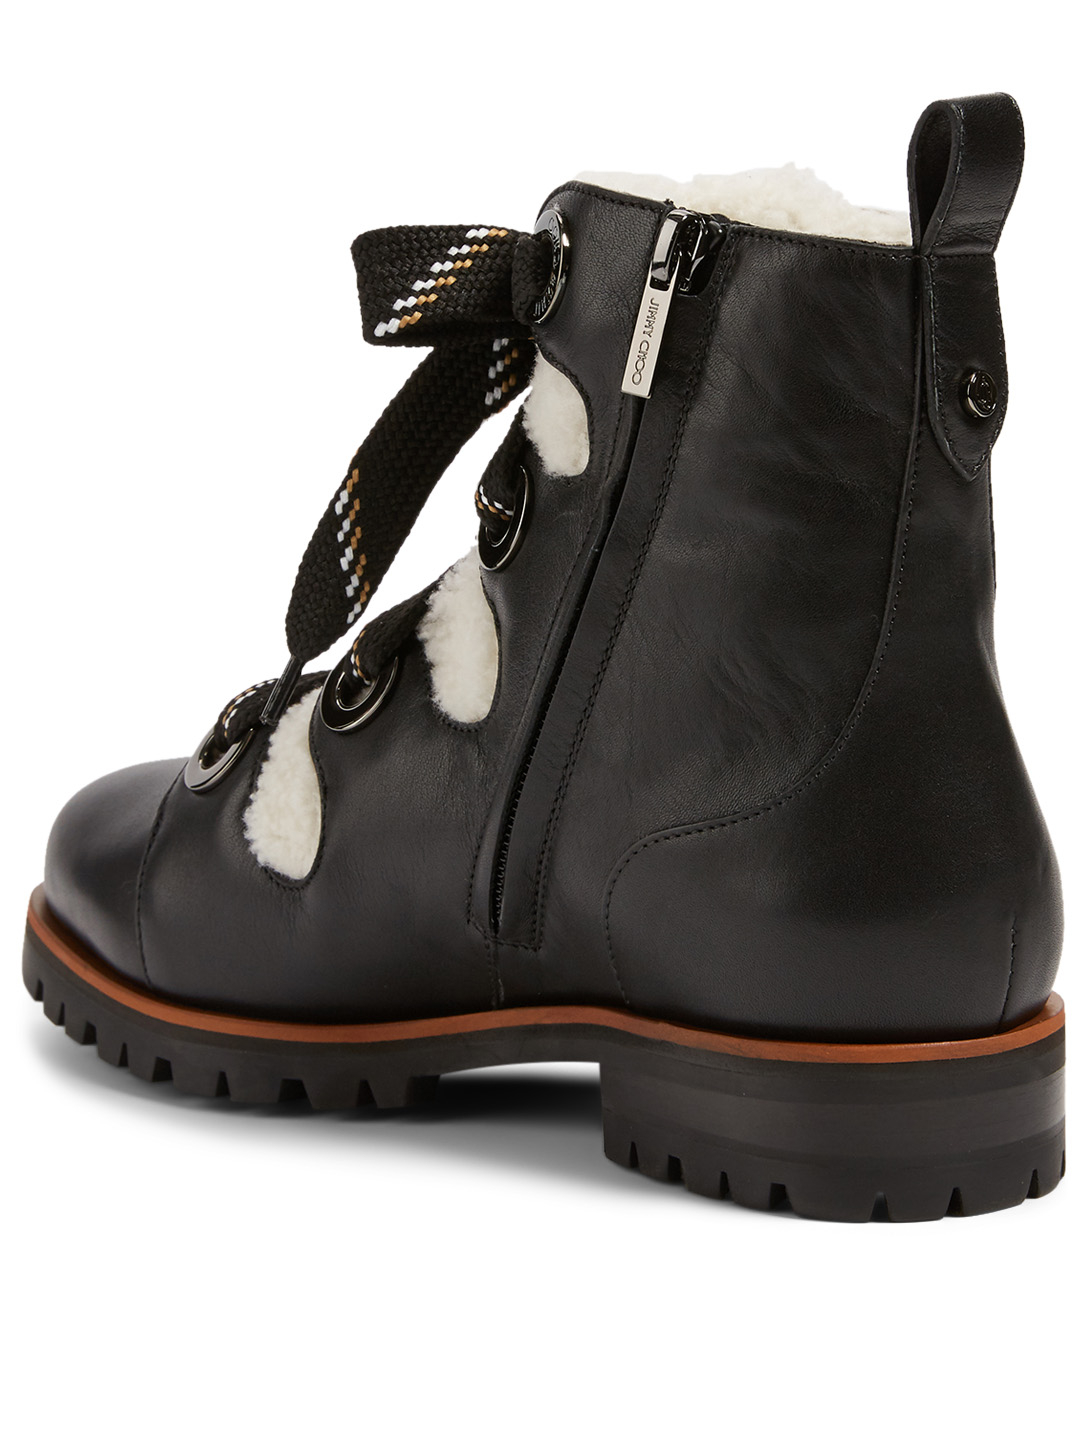 JIMMY CHOO Bei Leather Ankle Boots With Shearling Women's Black